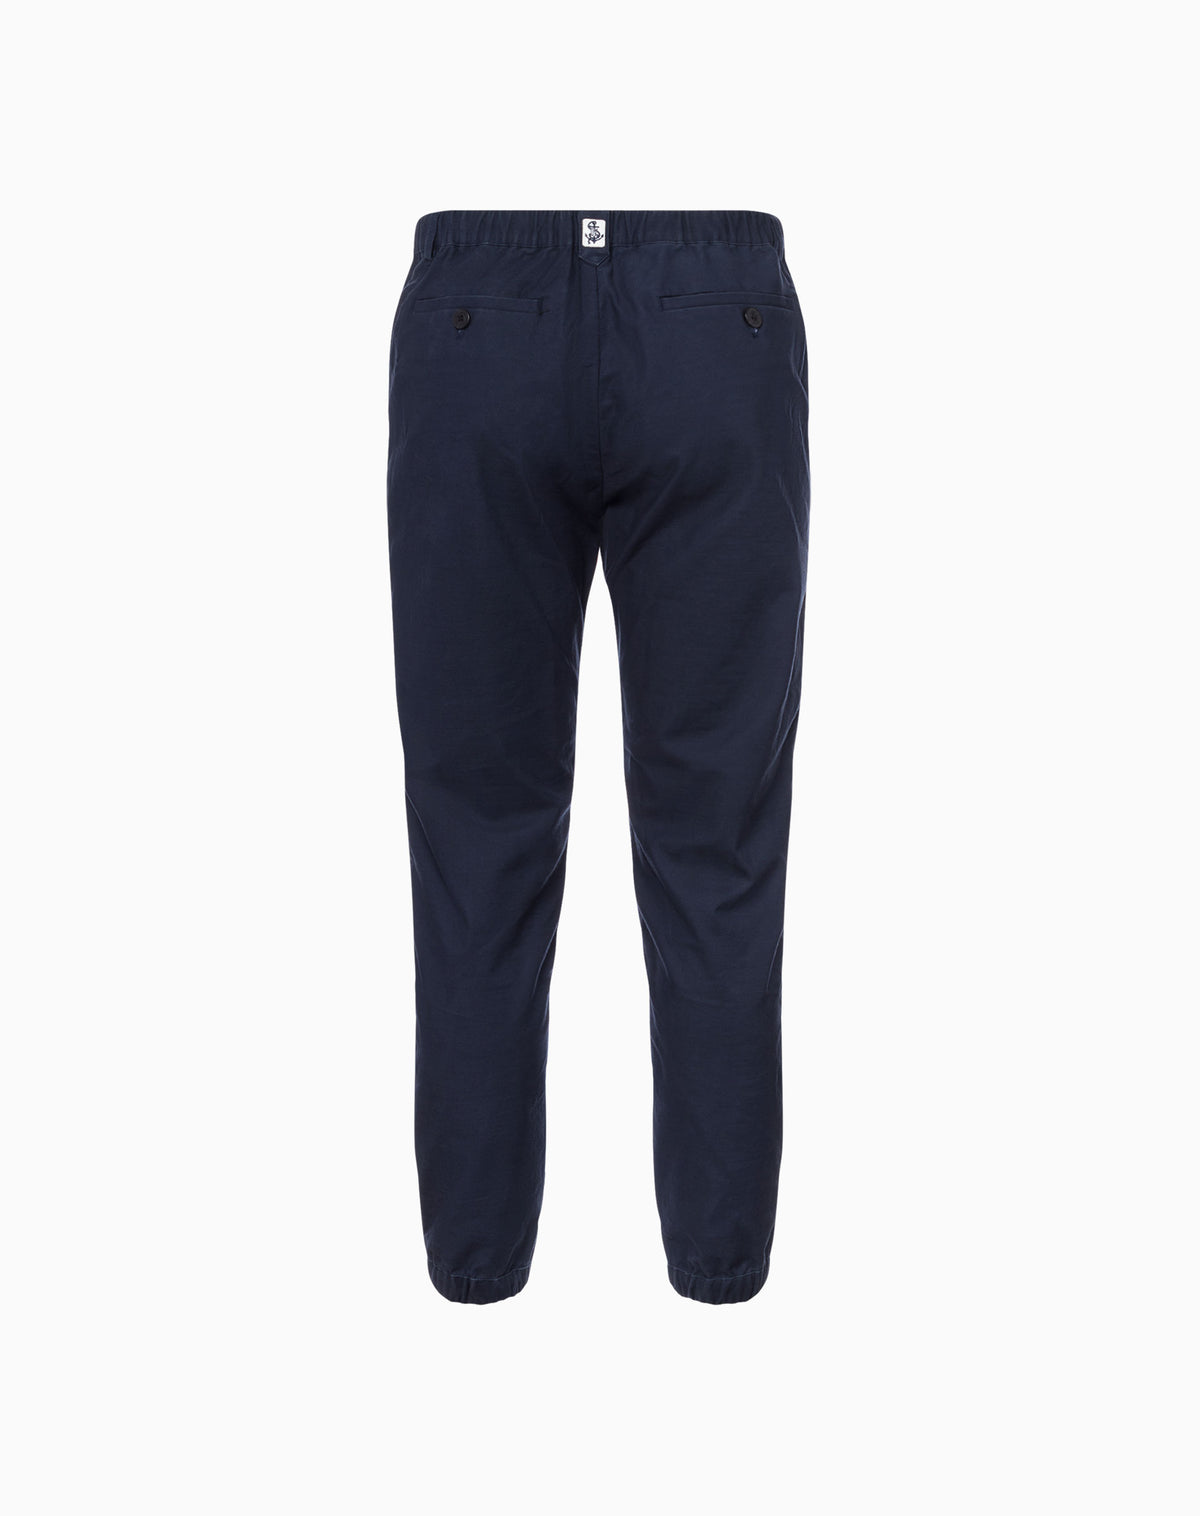 Deck Jogger in Navy Cotton Canvas